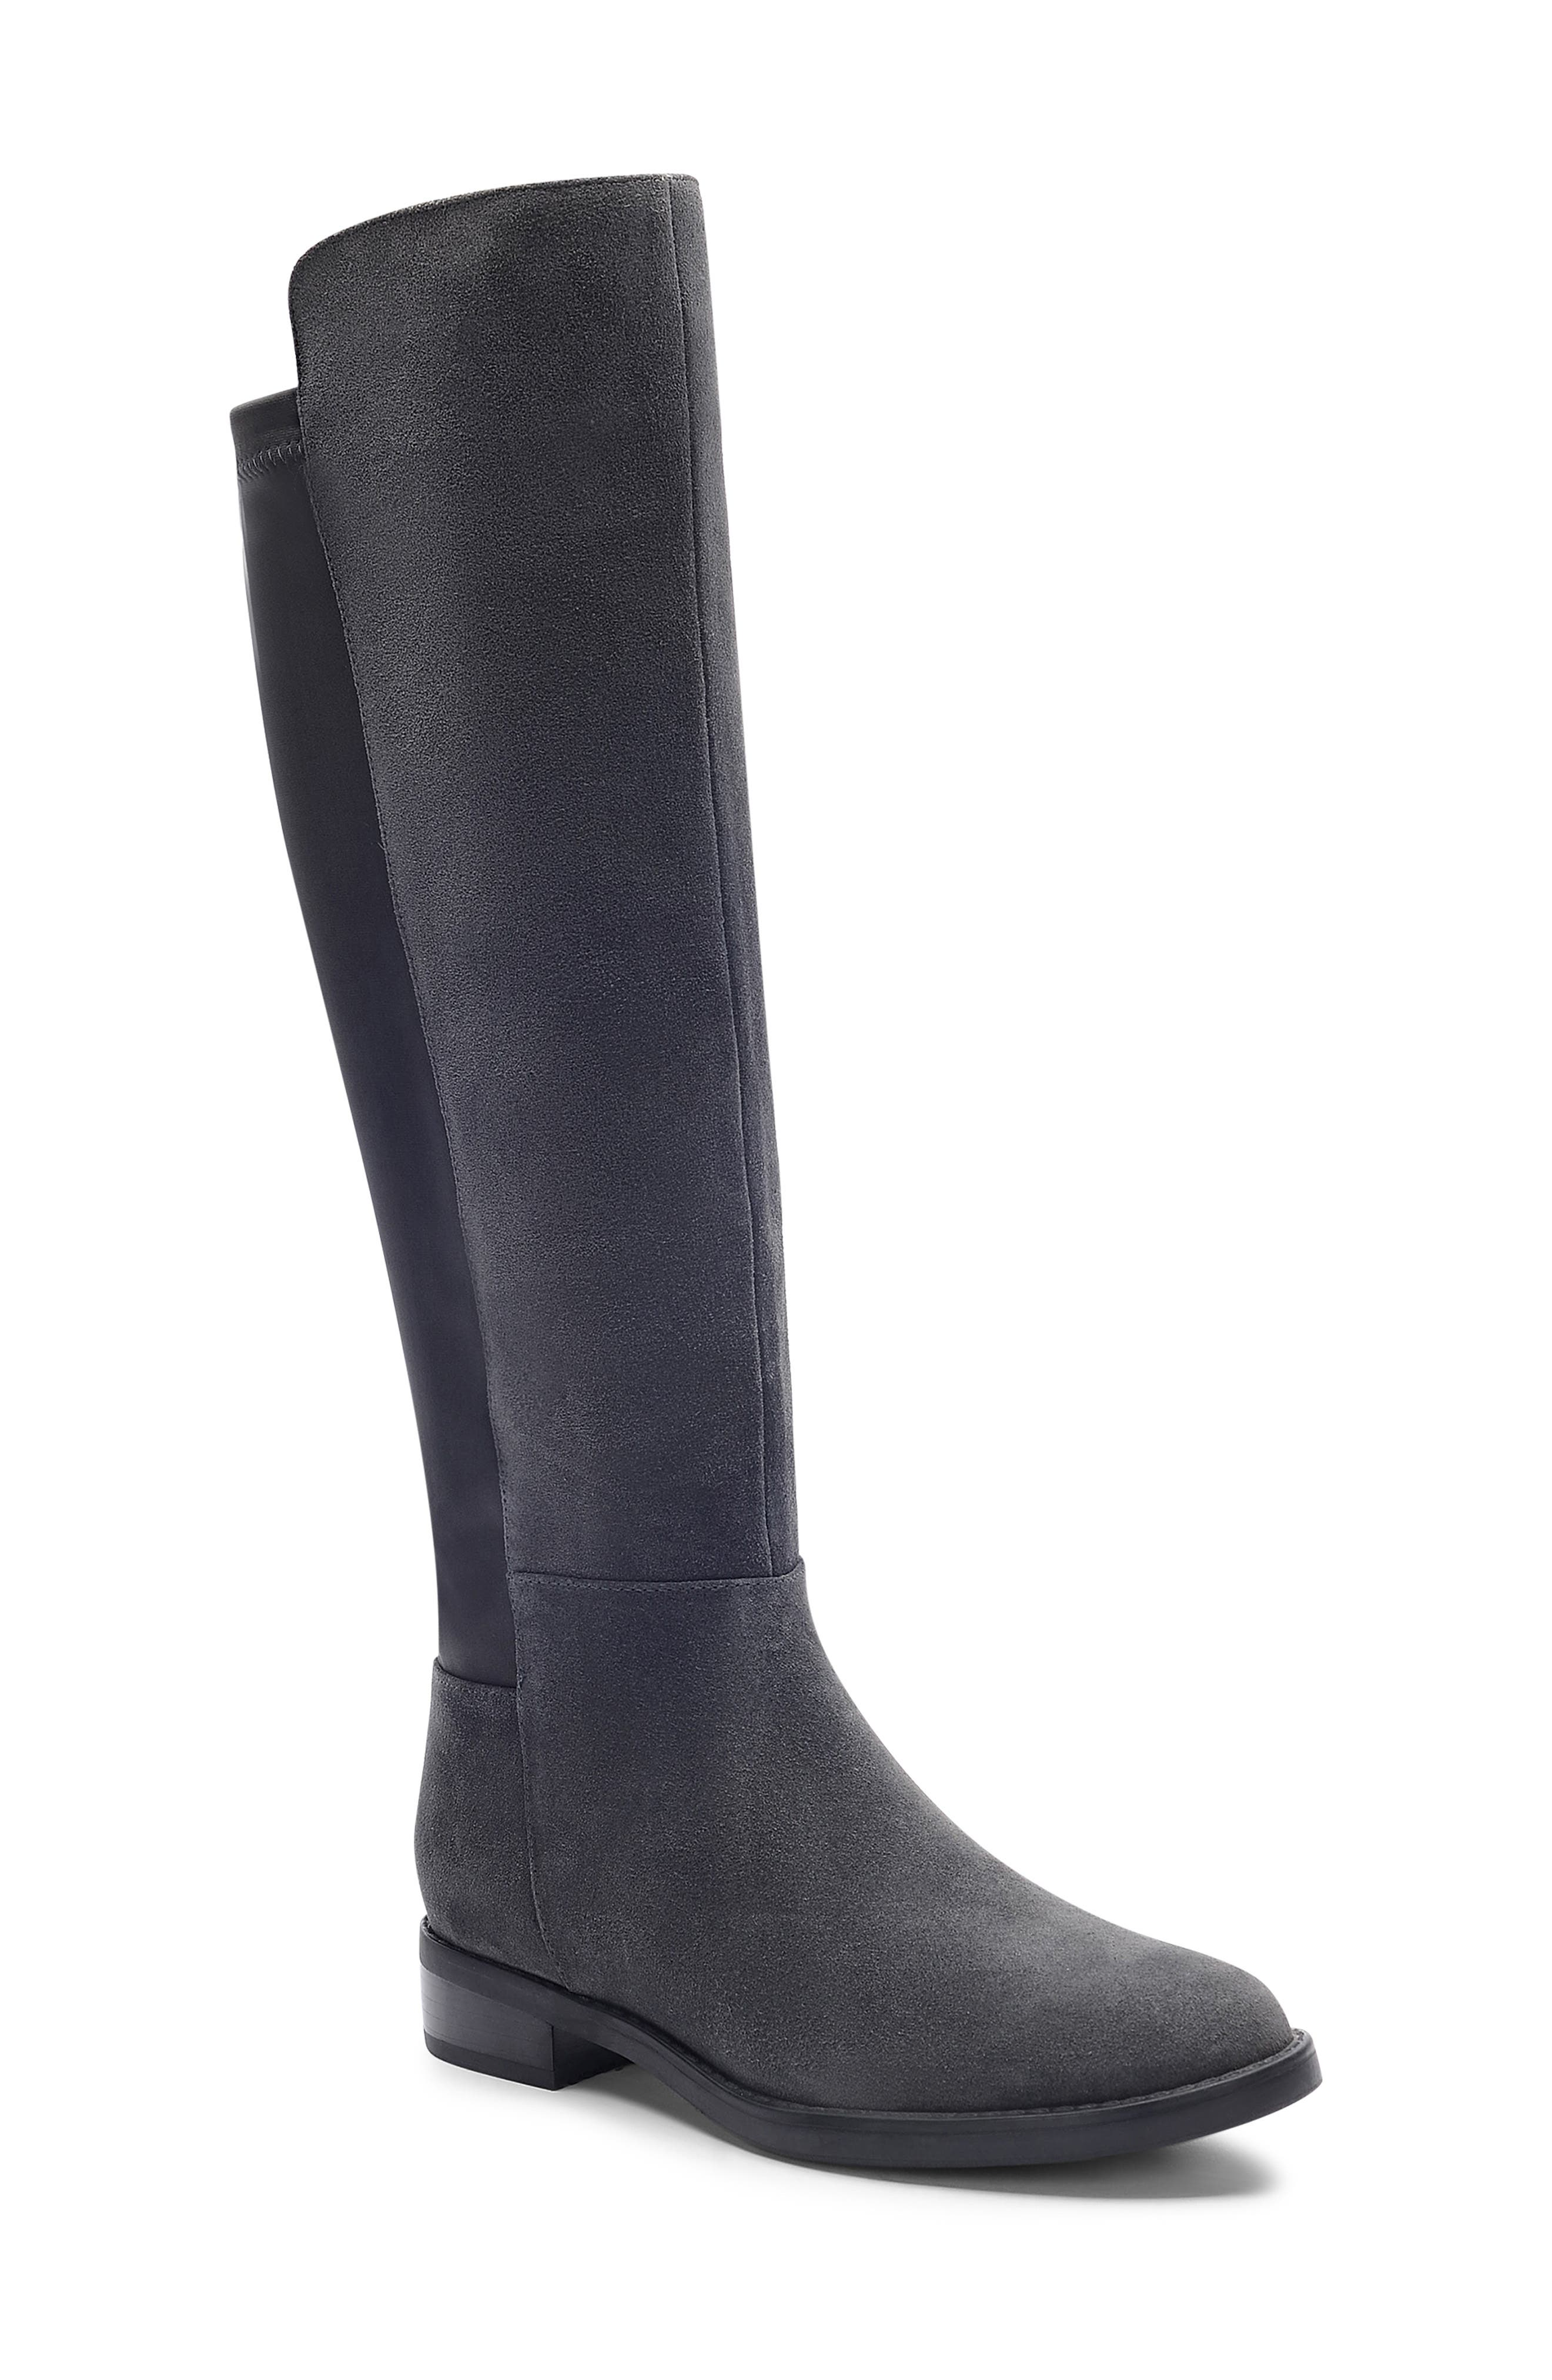 Ellie Waterproof Knee High Riding Boot,                             Main thumbnail 1, color,                             DARK GREY SUEDE